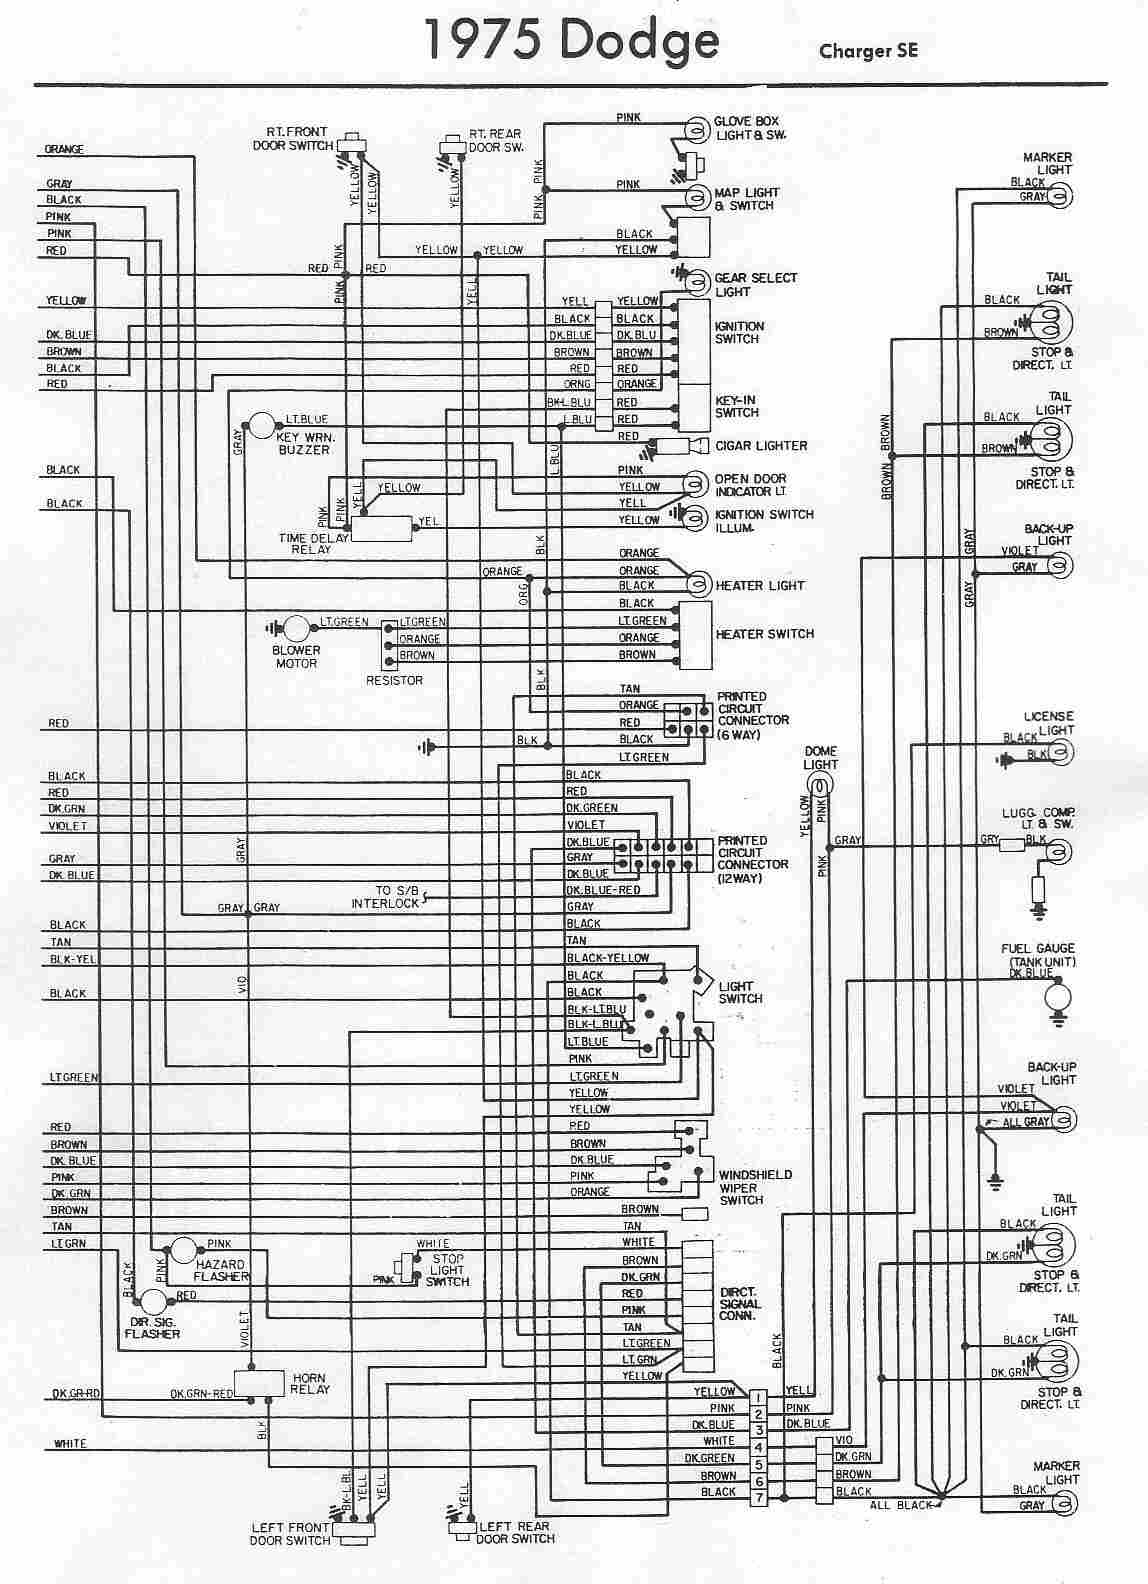 electrical wiring diagram of 1975 dodge charger?t=1508404771 dodge car manuals, wiring diagrams pdf & fault codes 2007 dodge charger wiring diagram at n-0.co